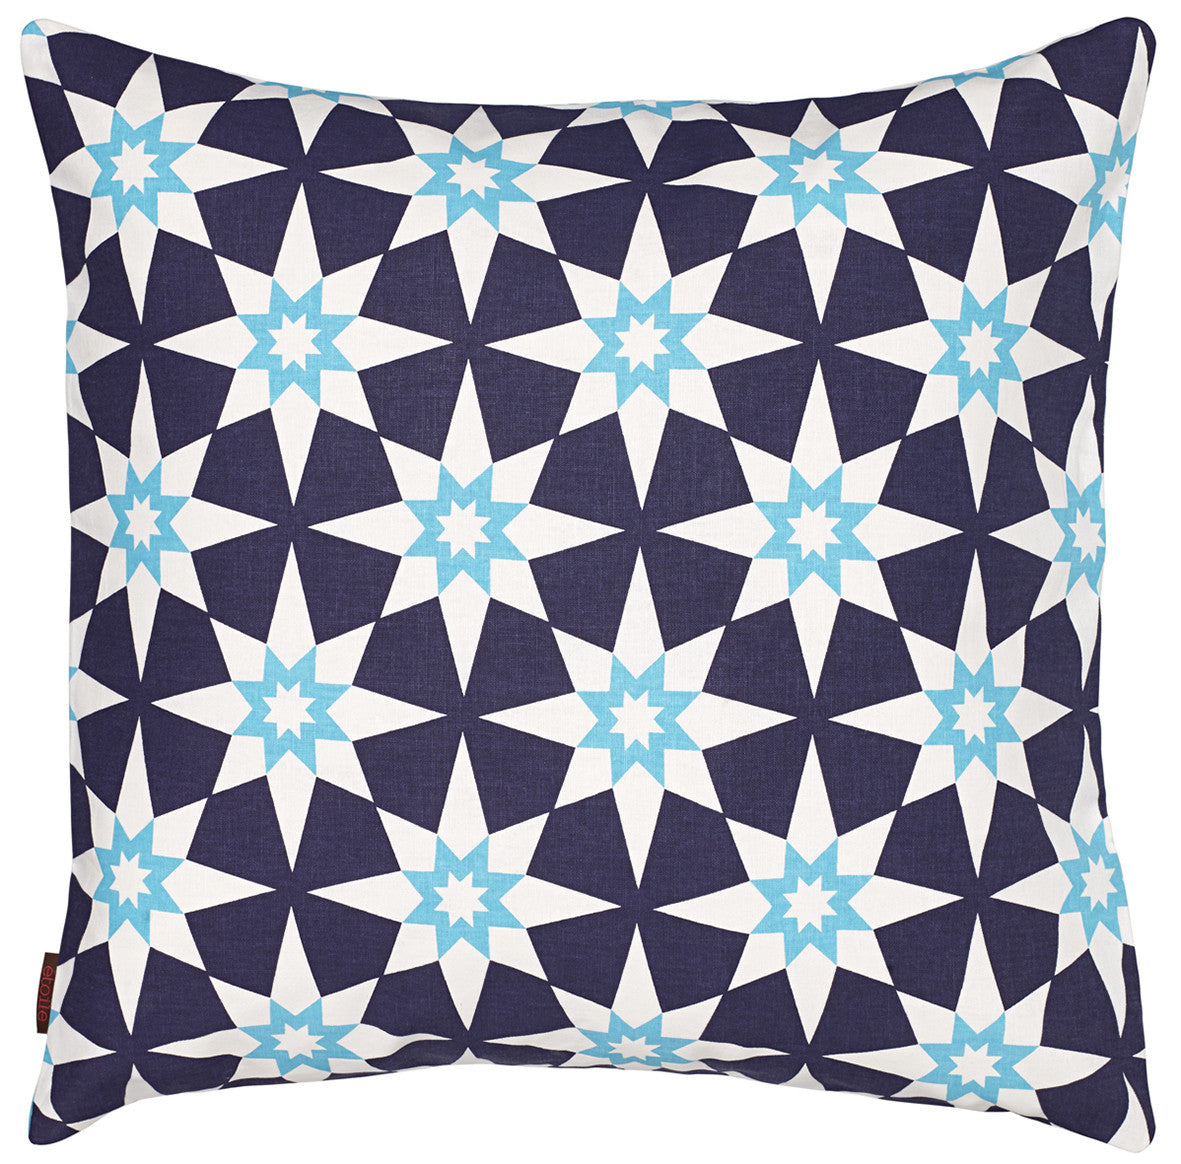 "Cadiz Geometric Star Pattern Linen Throw Pillow in Aubergine Purple and Turquoise 55x55cm (22x22"") ships from Canada worldwide including the USA"